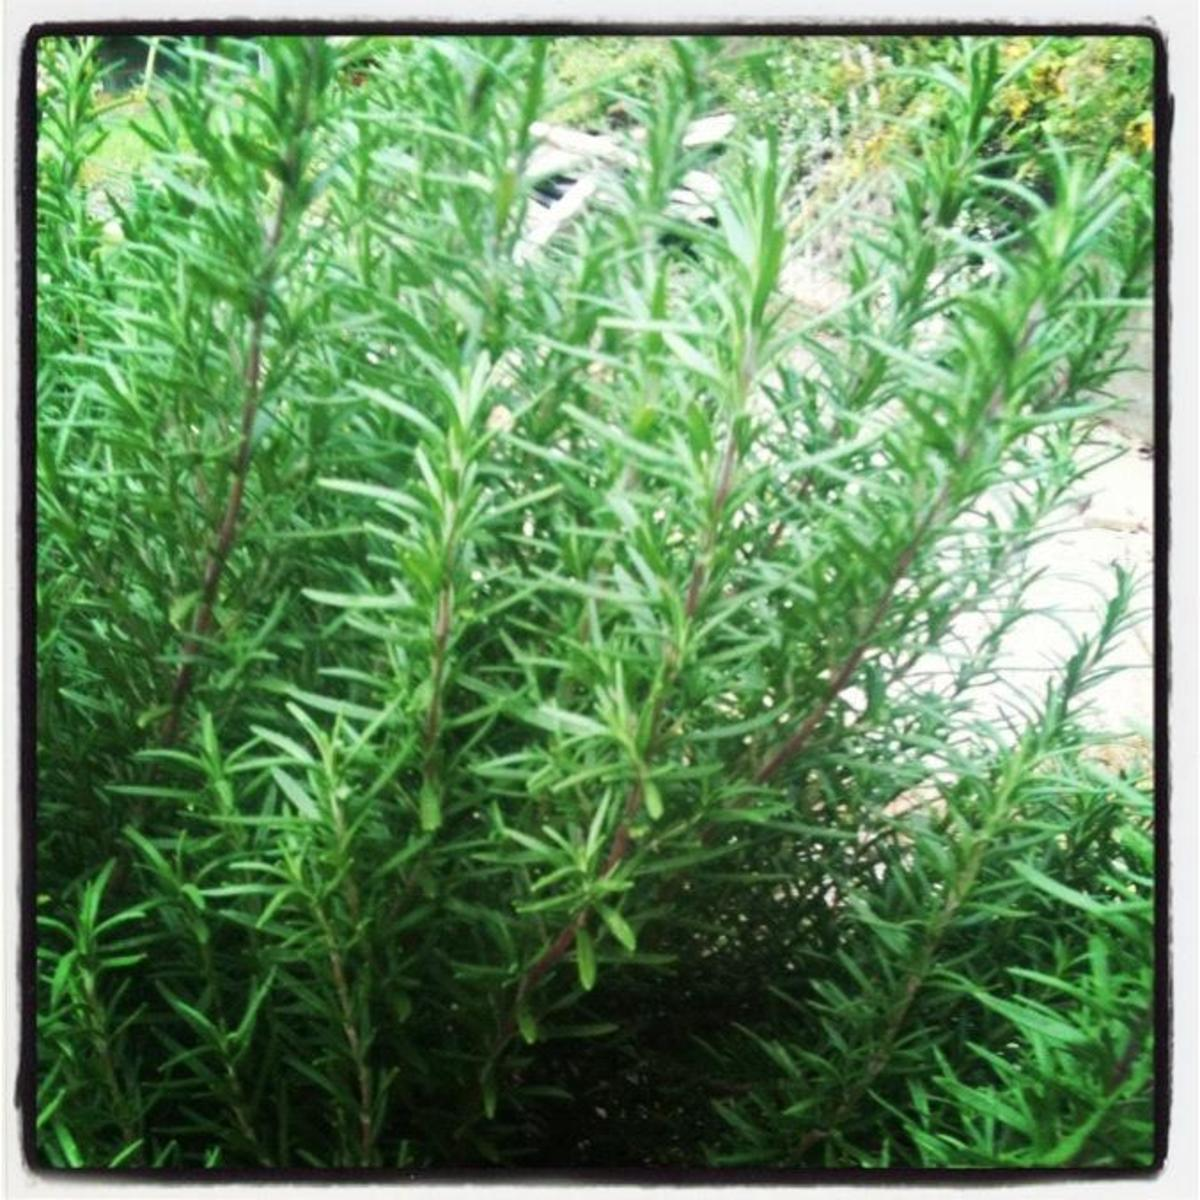 A healthy rosemary plant in my summer garden.